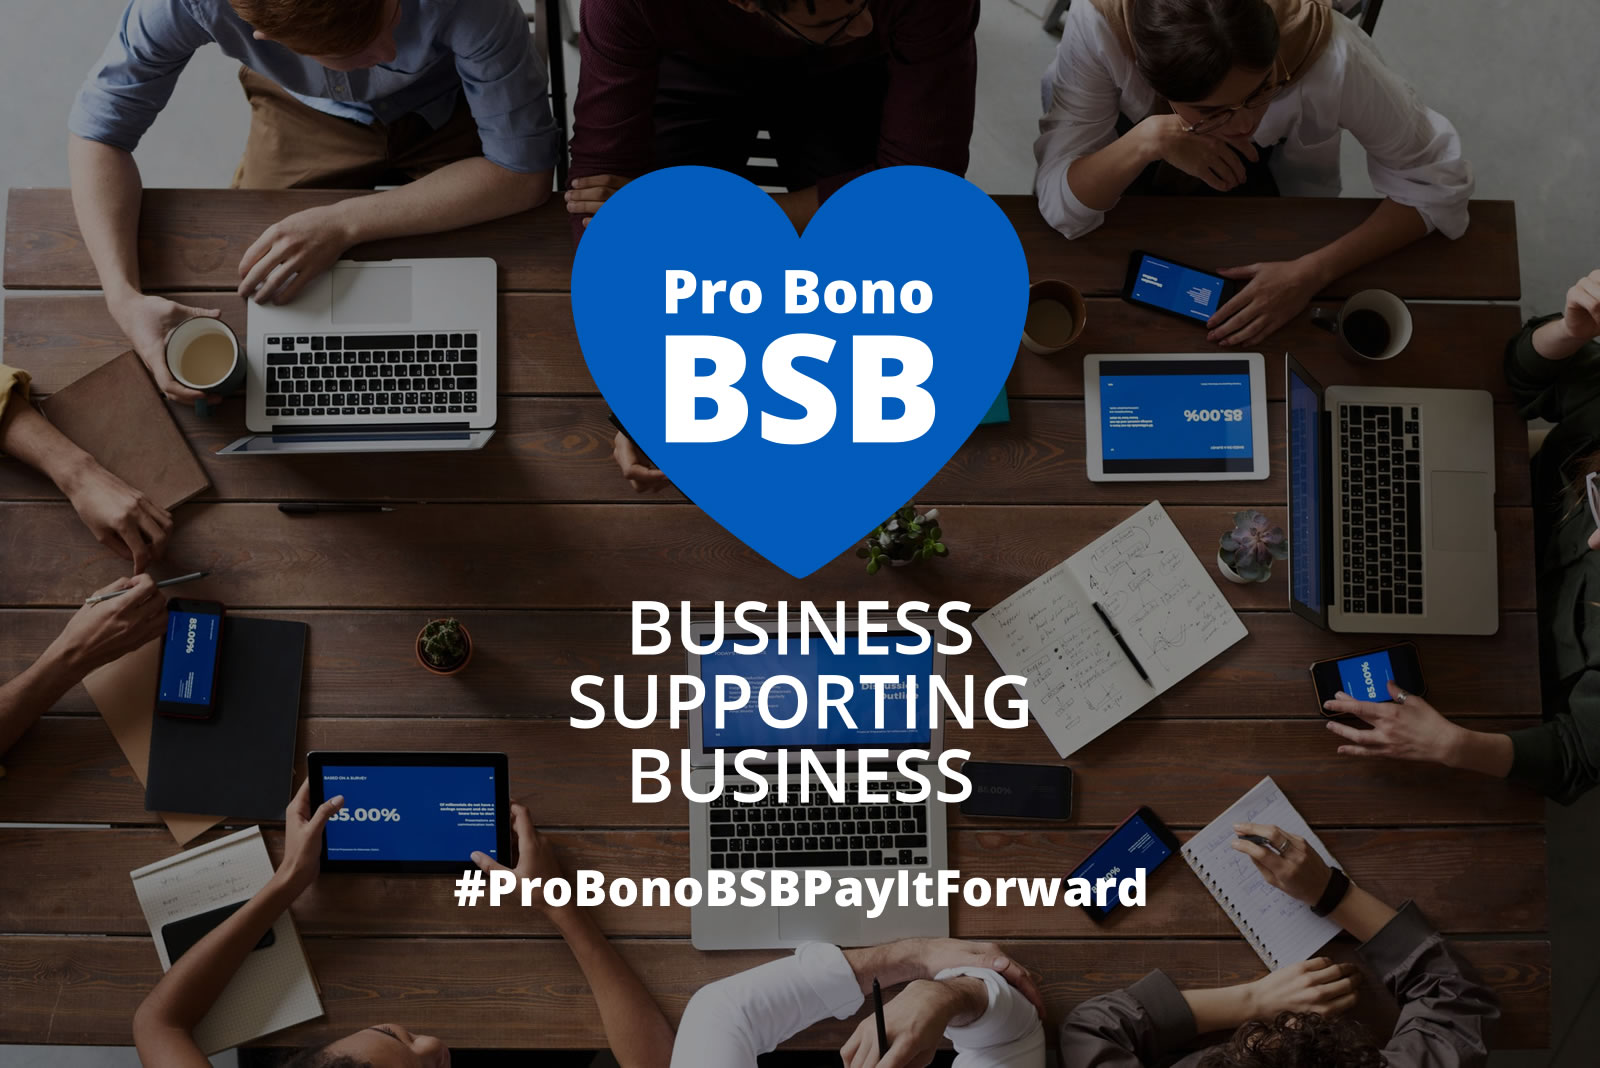 Pro Bono Business Supporting Business image